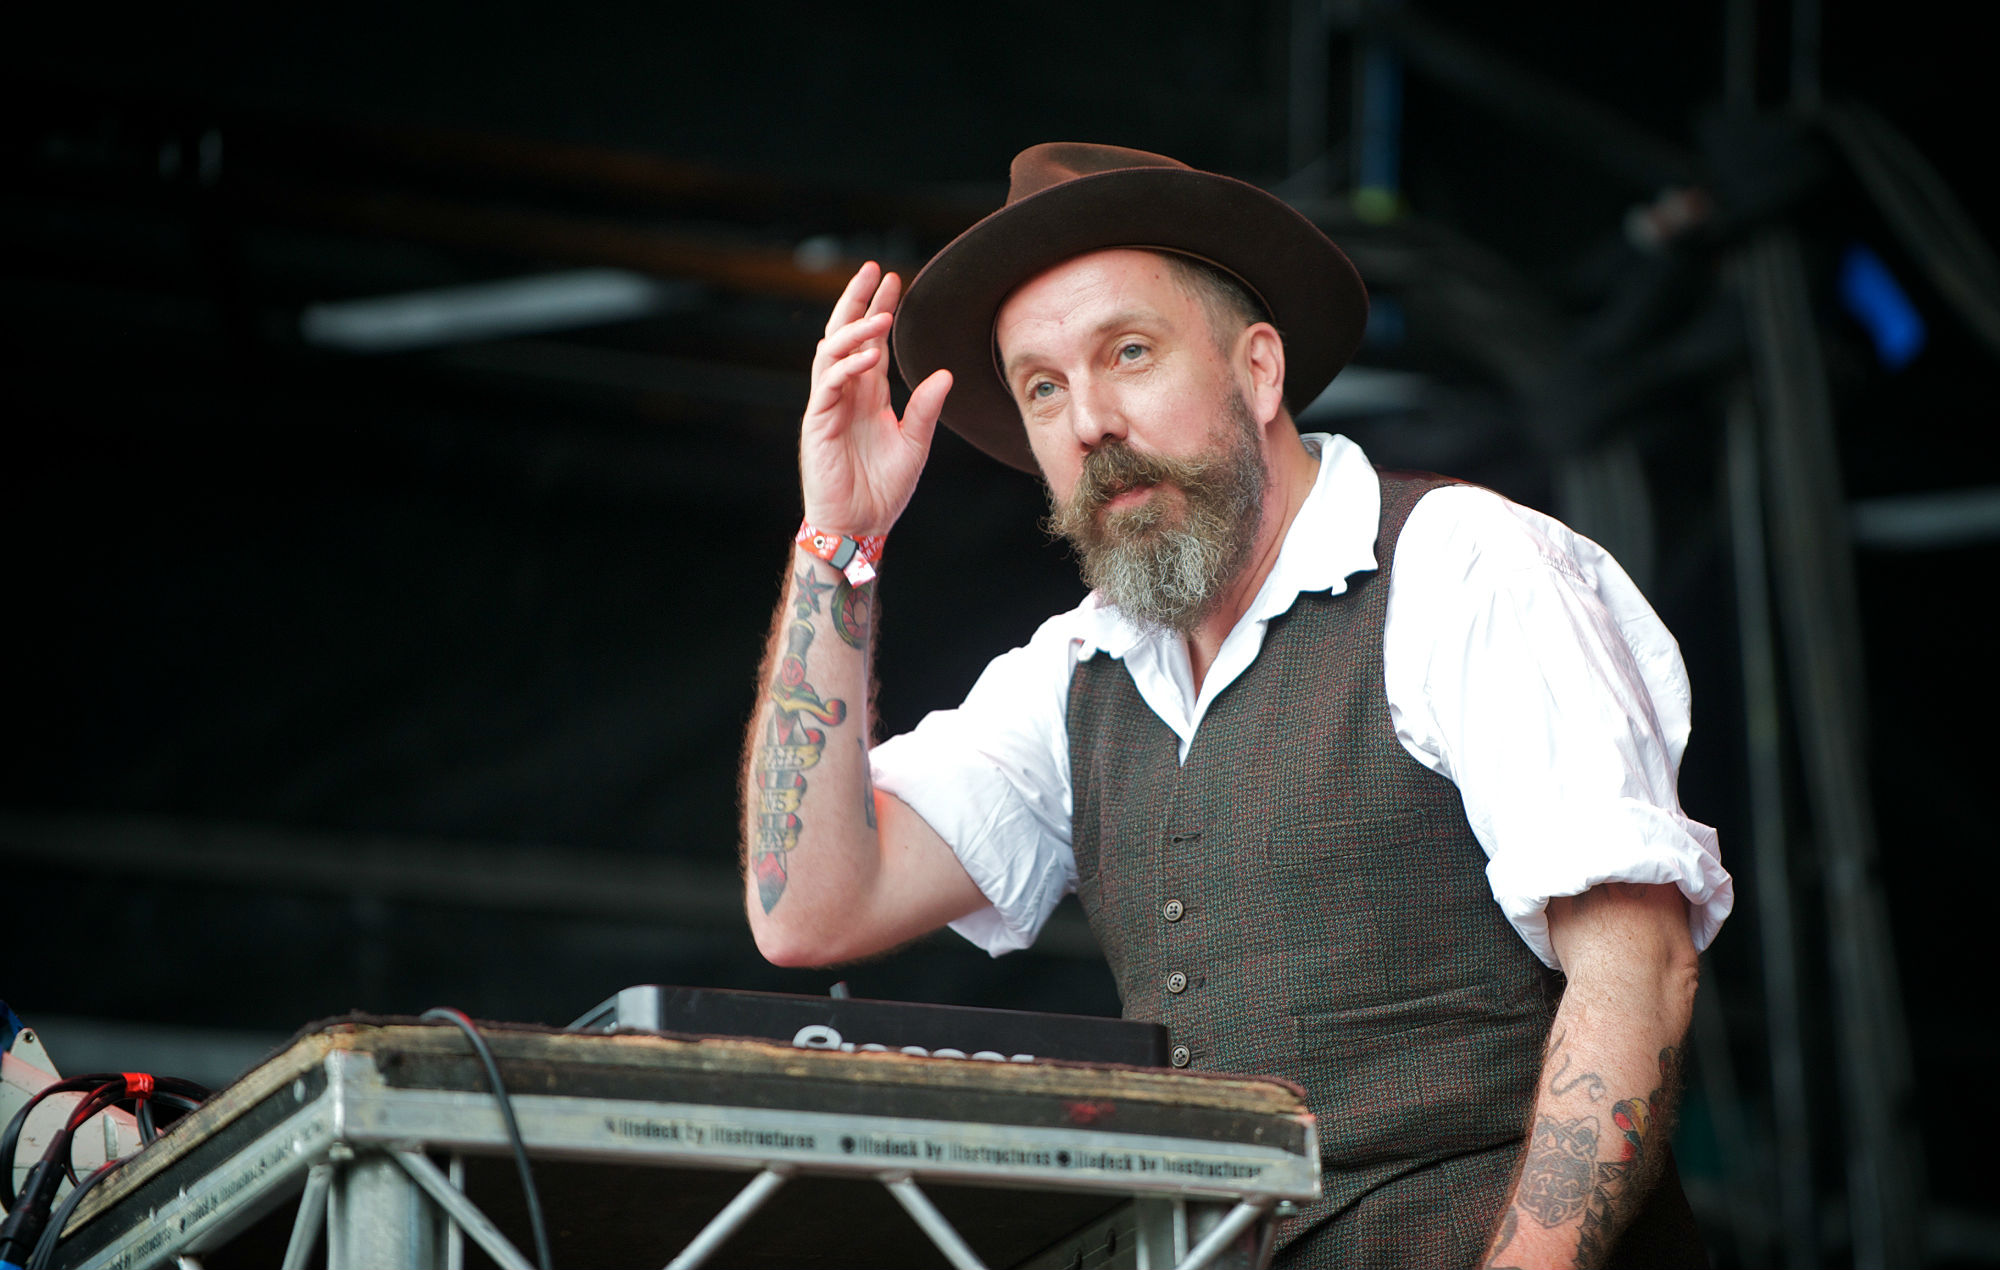 Andrew Weatherall – the NME obituary, 1963-2002: The innovator who bridged the worlds of rock and Ibiza